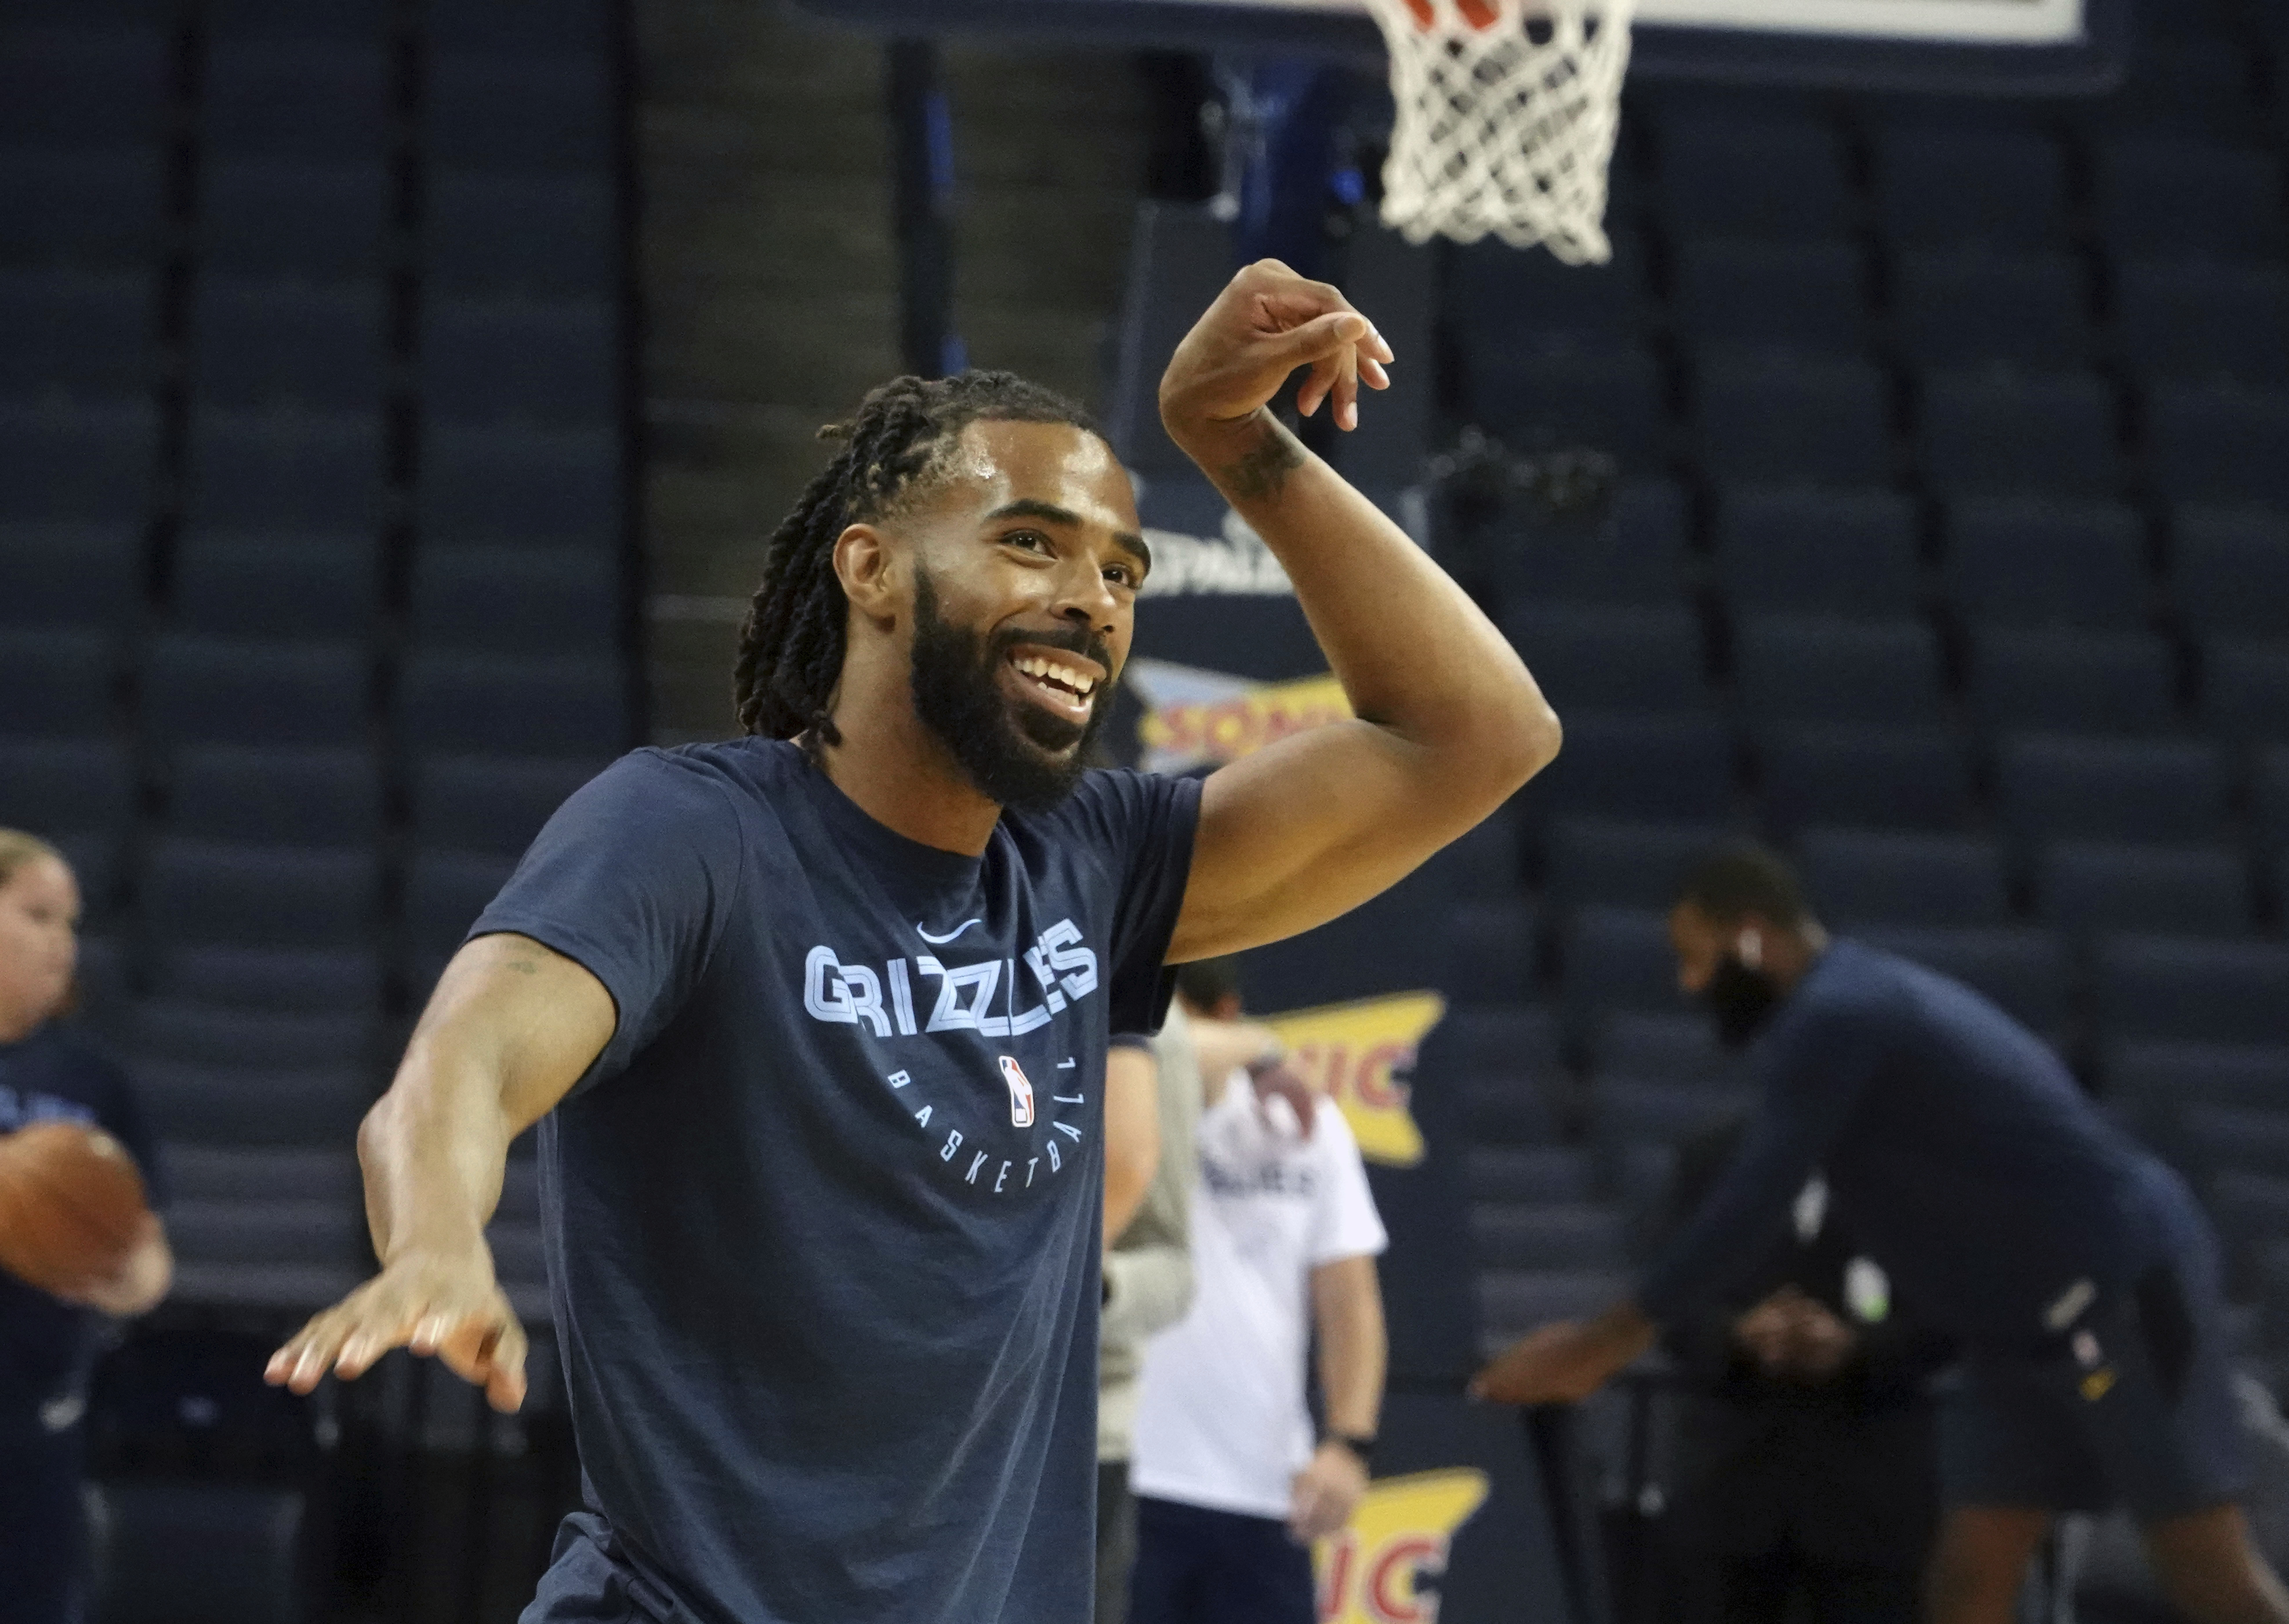 Grizzlies have high expectations with Gasol, healthy Conley